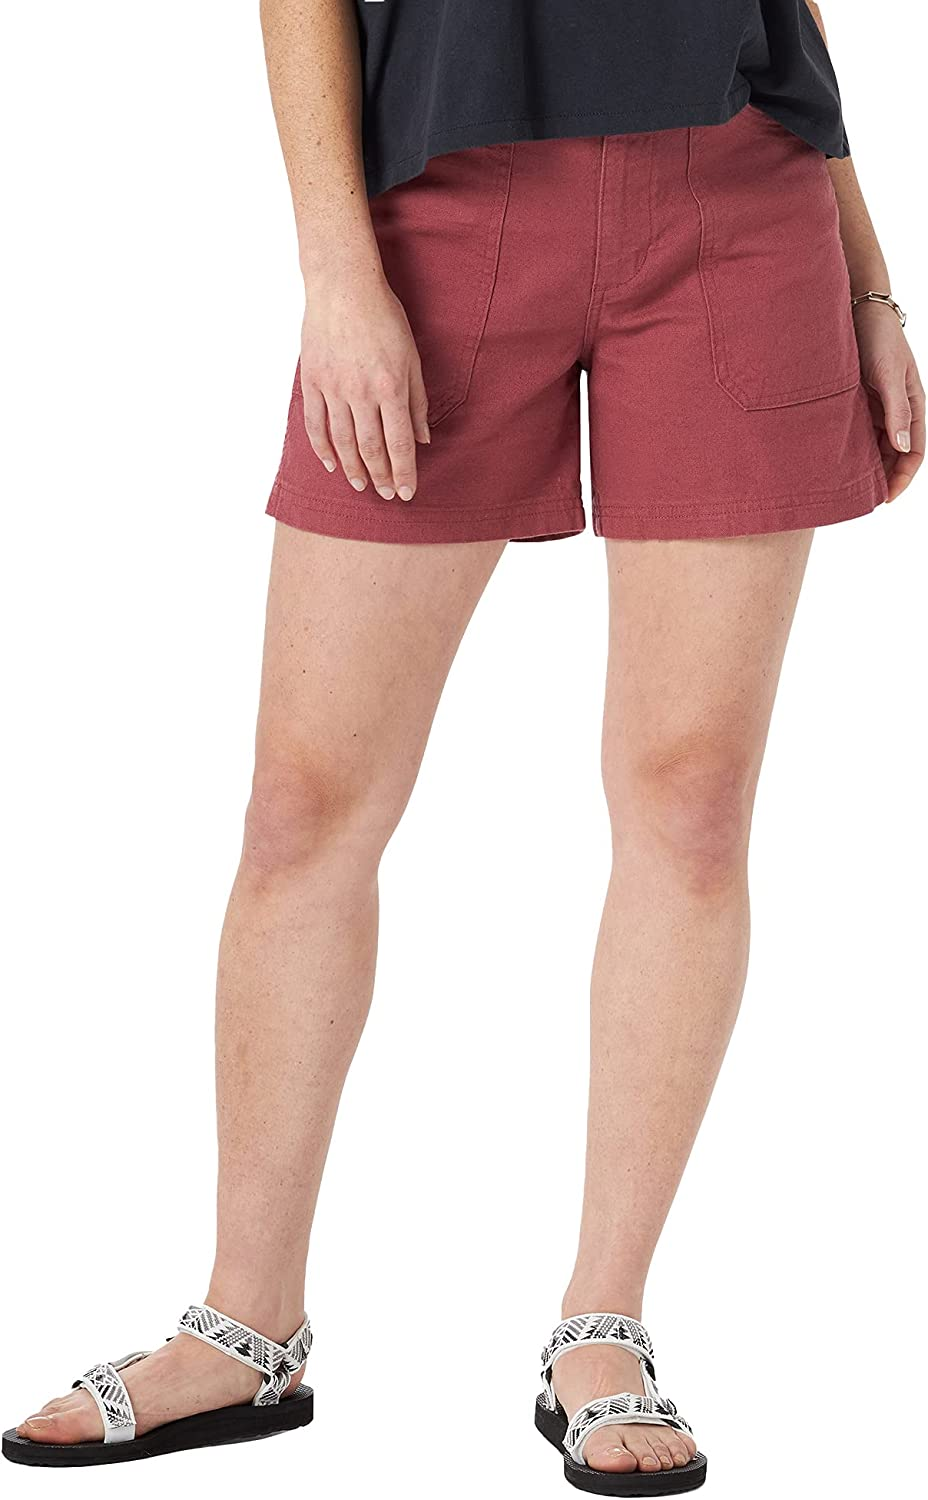 ATG by Wrangler Women's 4 years warranty Canvas Short Max 44% OFF Hike